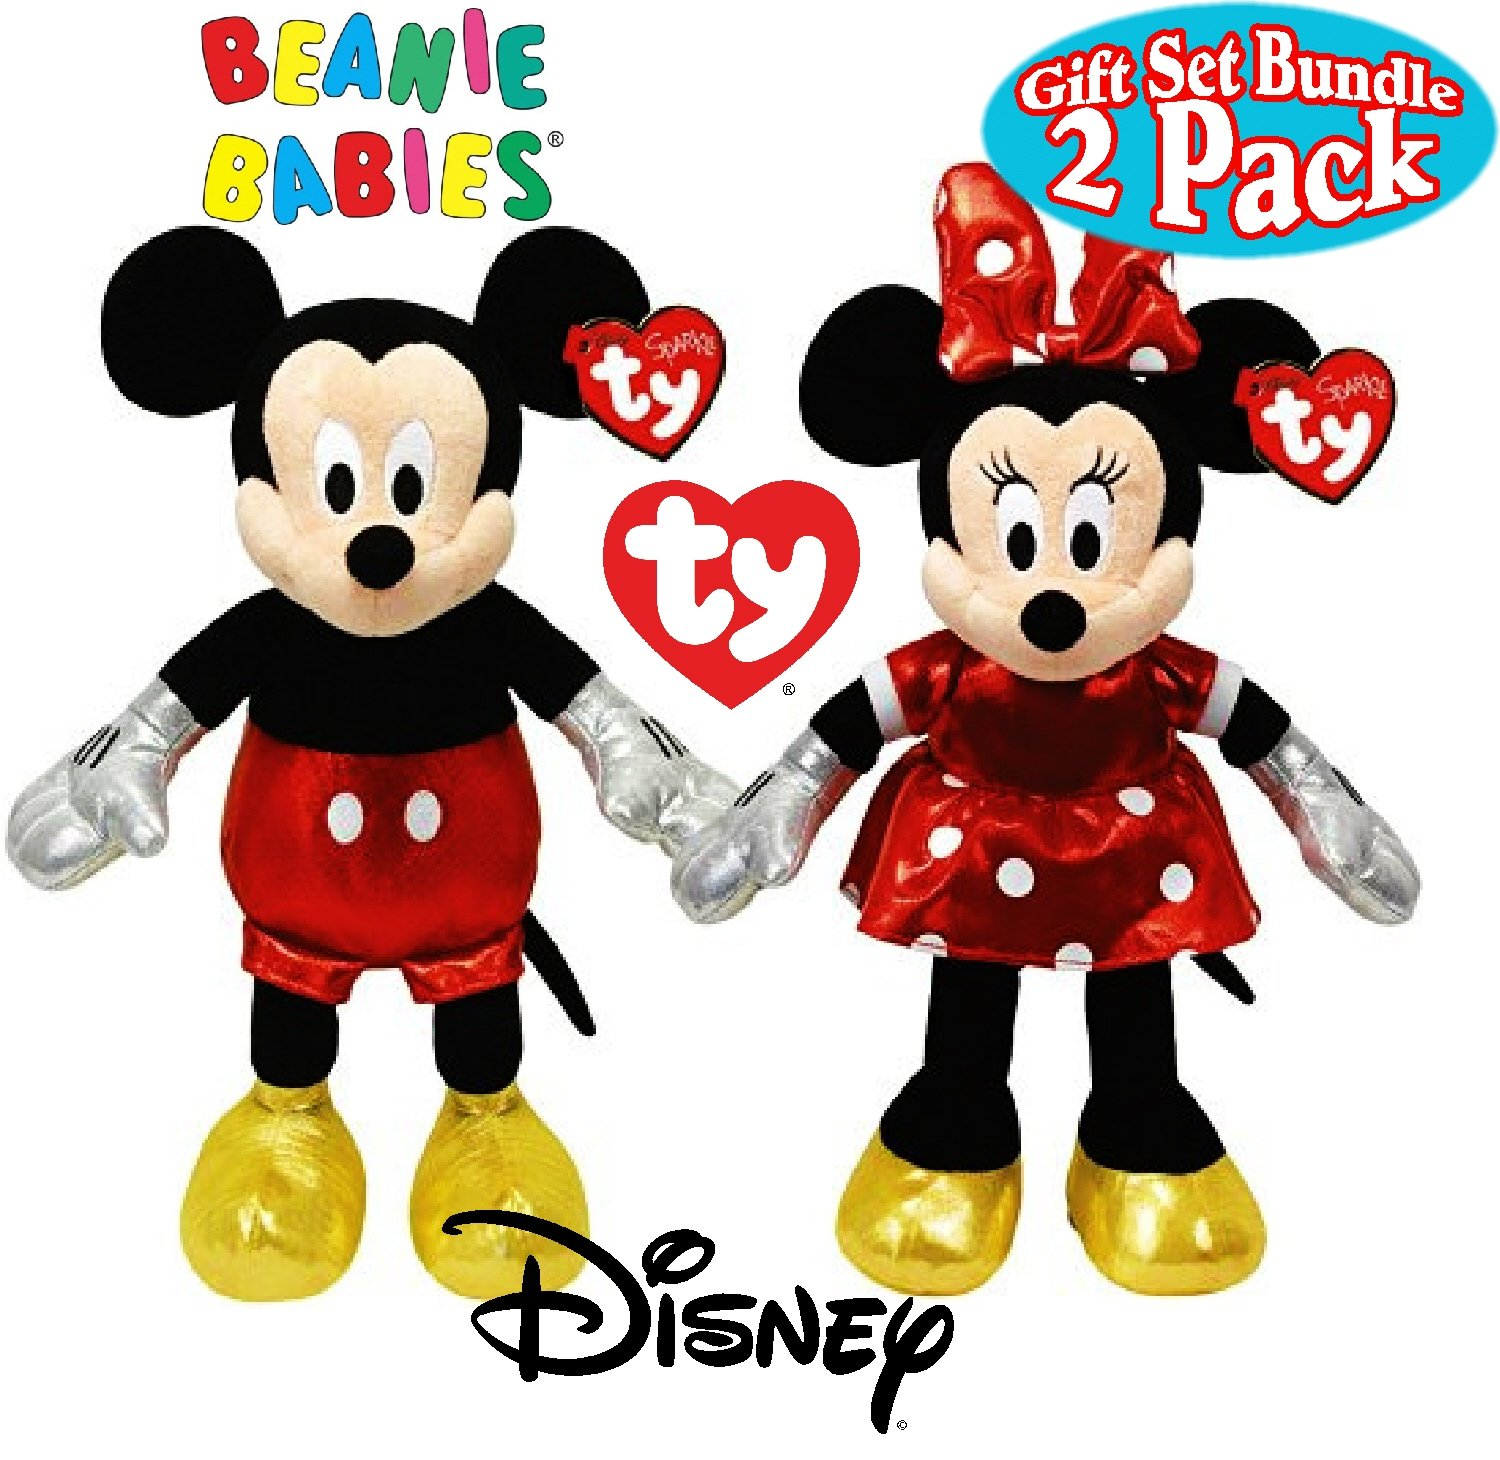 Amazon.com  TY Beanie Babies Sparkle Classic Disney Mickey   Minnie Mouse  Gift Set Bundle - 2 Pack  Toys   Games 90b3a4473cf